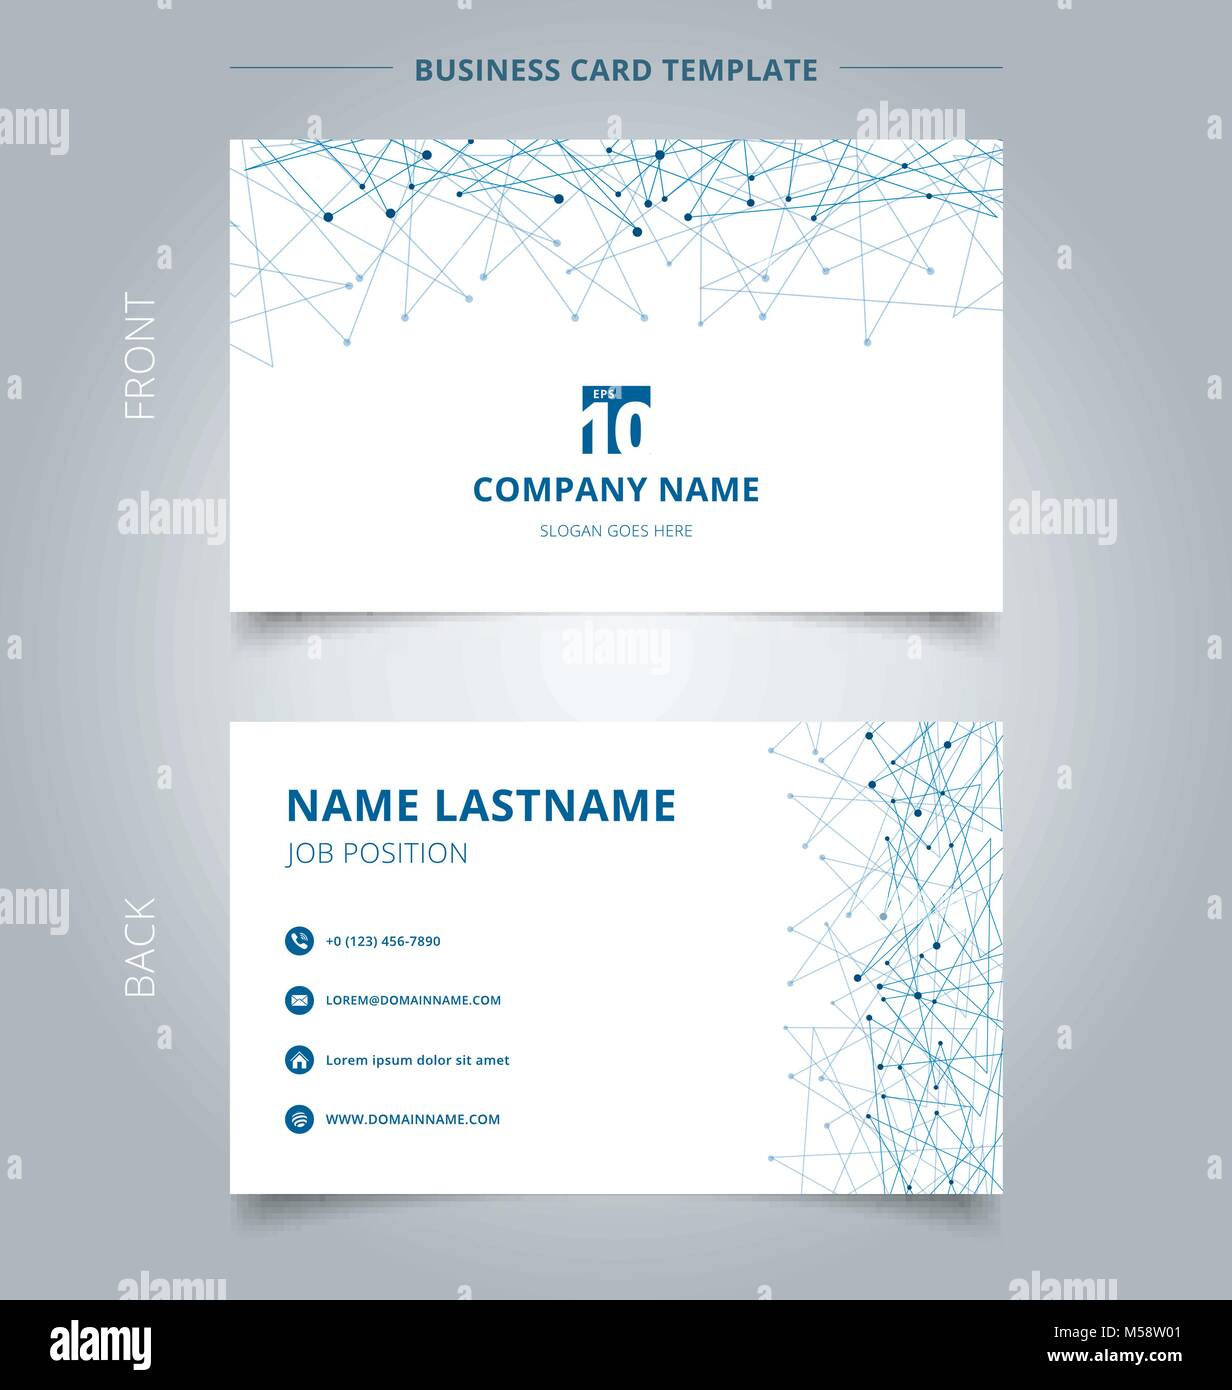 Creative business card and name card template technology blue mesh creative business card and name card template technology blue mesh with dots on white background techno design of future digital data abstract conc colourmoves